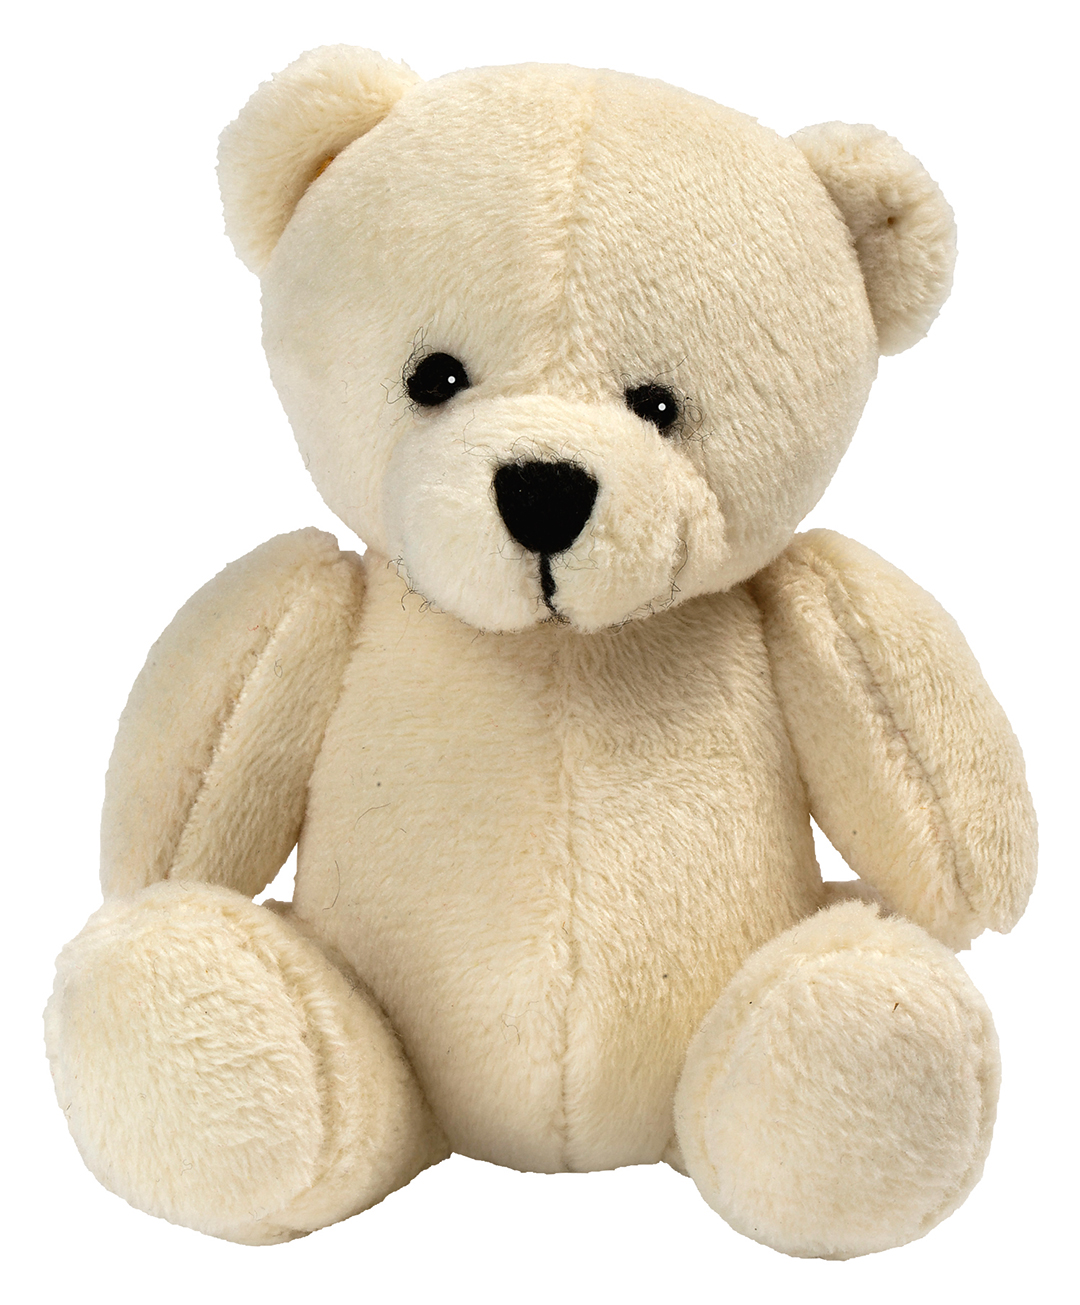 softplush teddy Bianka, small